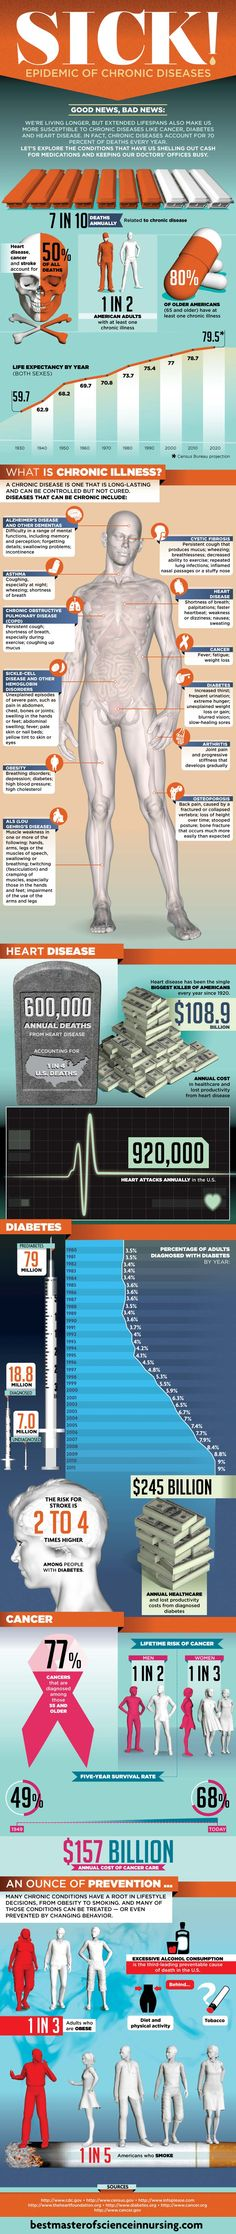 #INFOgraphic > Chronic Disease Statistics: Though humans have achieved much in terms of longevity, it seems that quality or healthy living is still lagging. We are getting sick more than ever and statistics indicate that chronic diseases account for 70% of annual deaths in the US!  > http://infographicsmania.com/chronic-disease-statistics/?utm_source=Pinterest&utm_medium=INFOGRAPHICSMANIA&utm_campaign=SNAP